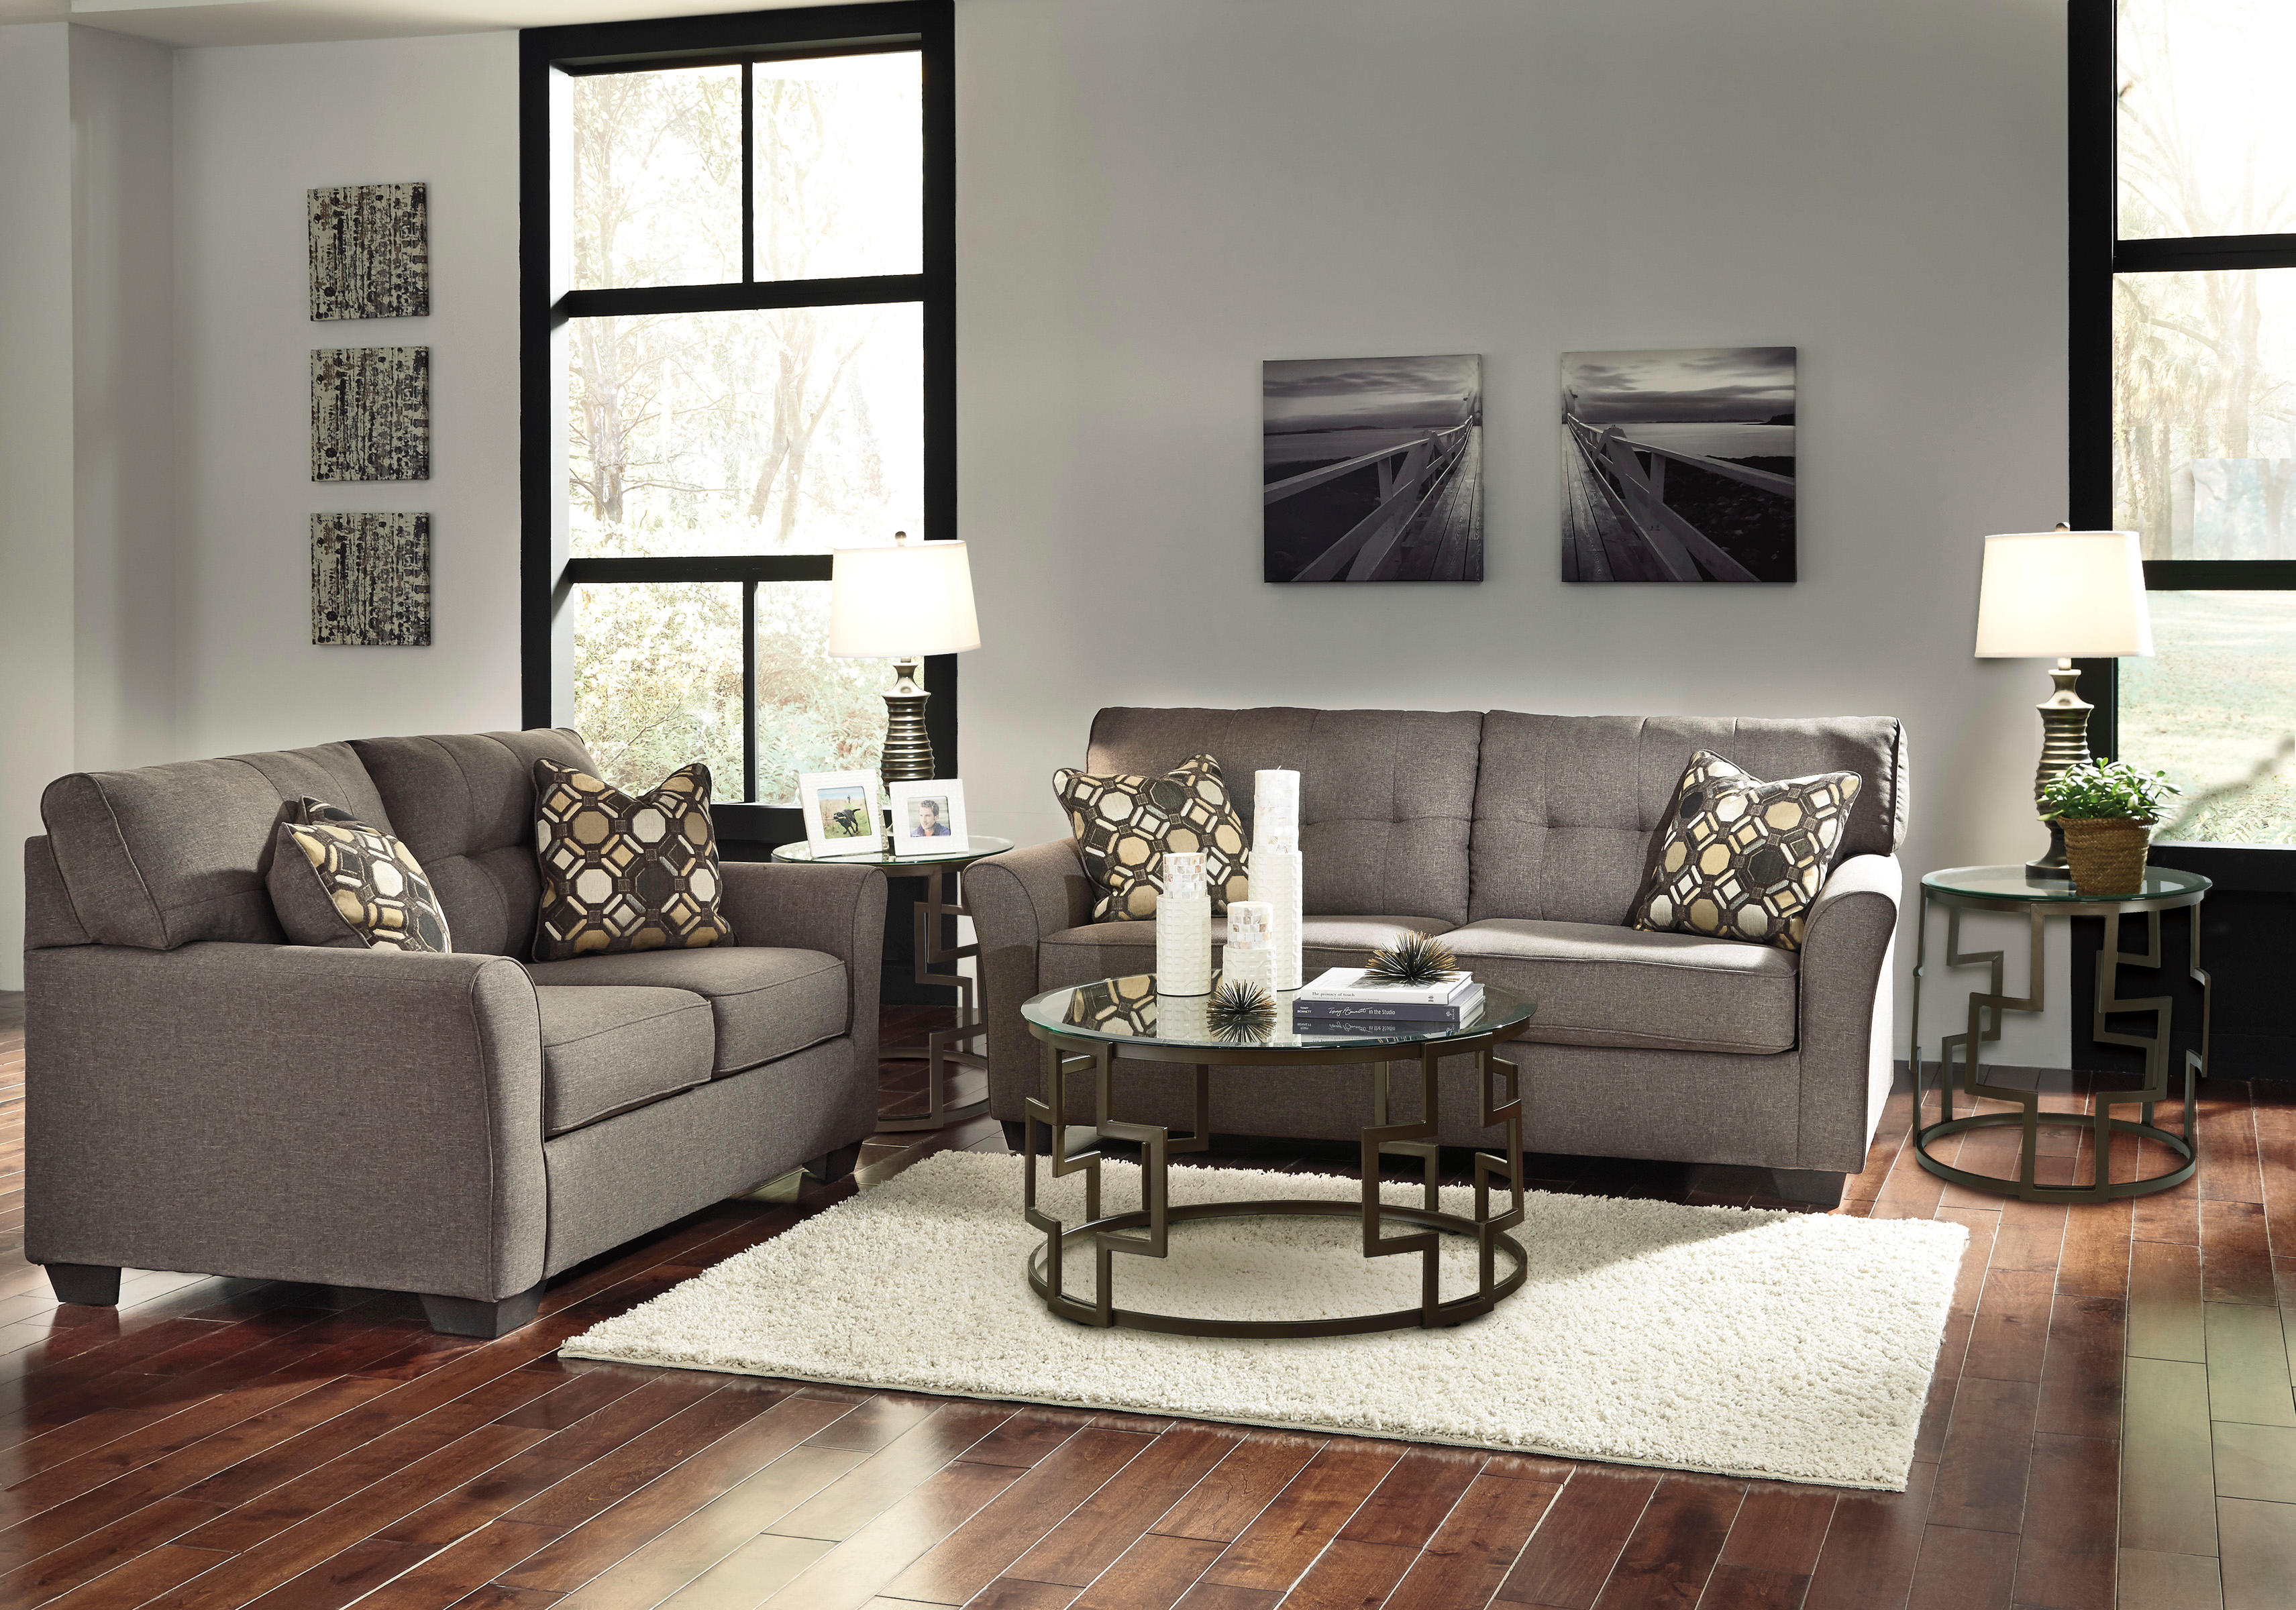 Mattress and Furniture Discount Warehouse image 7